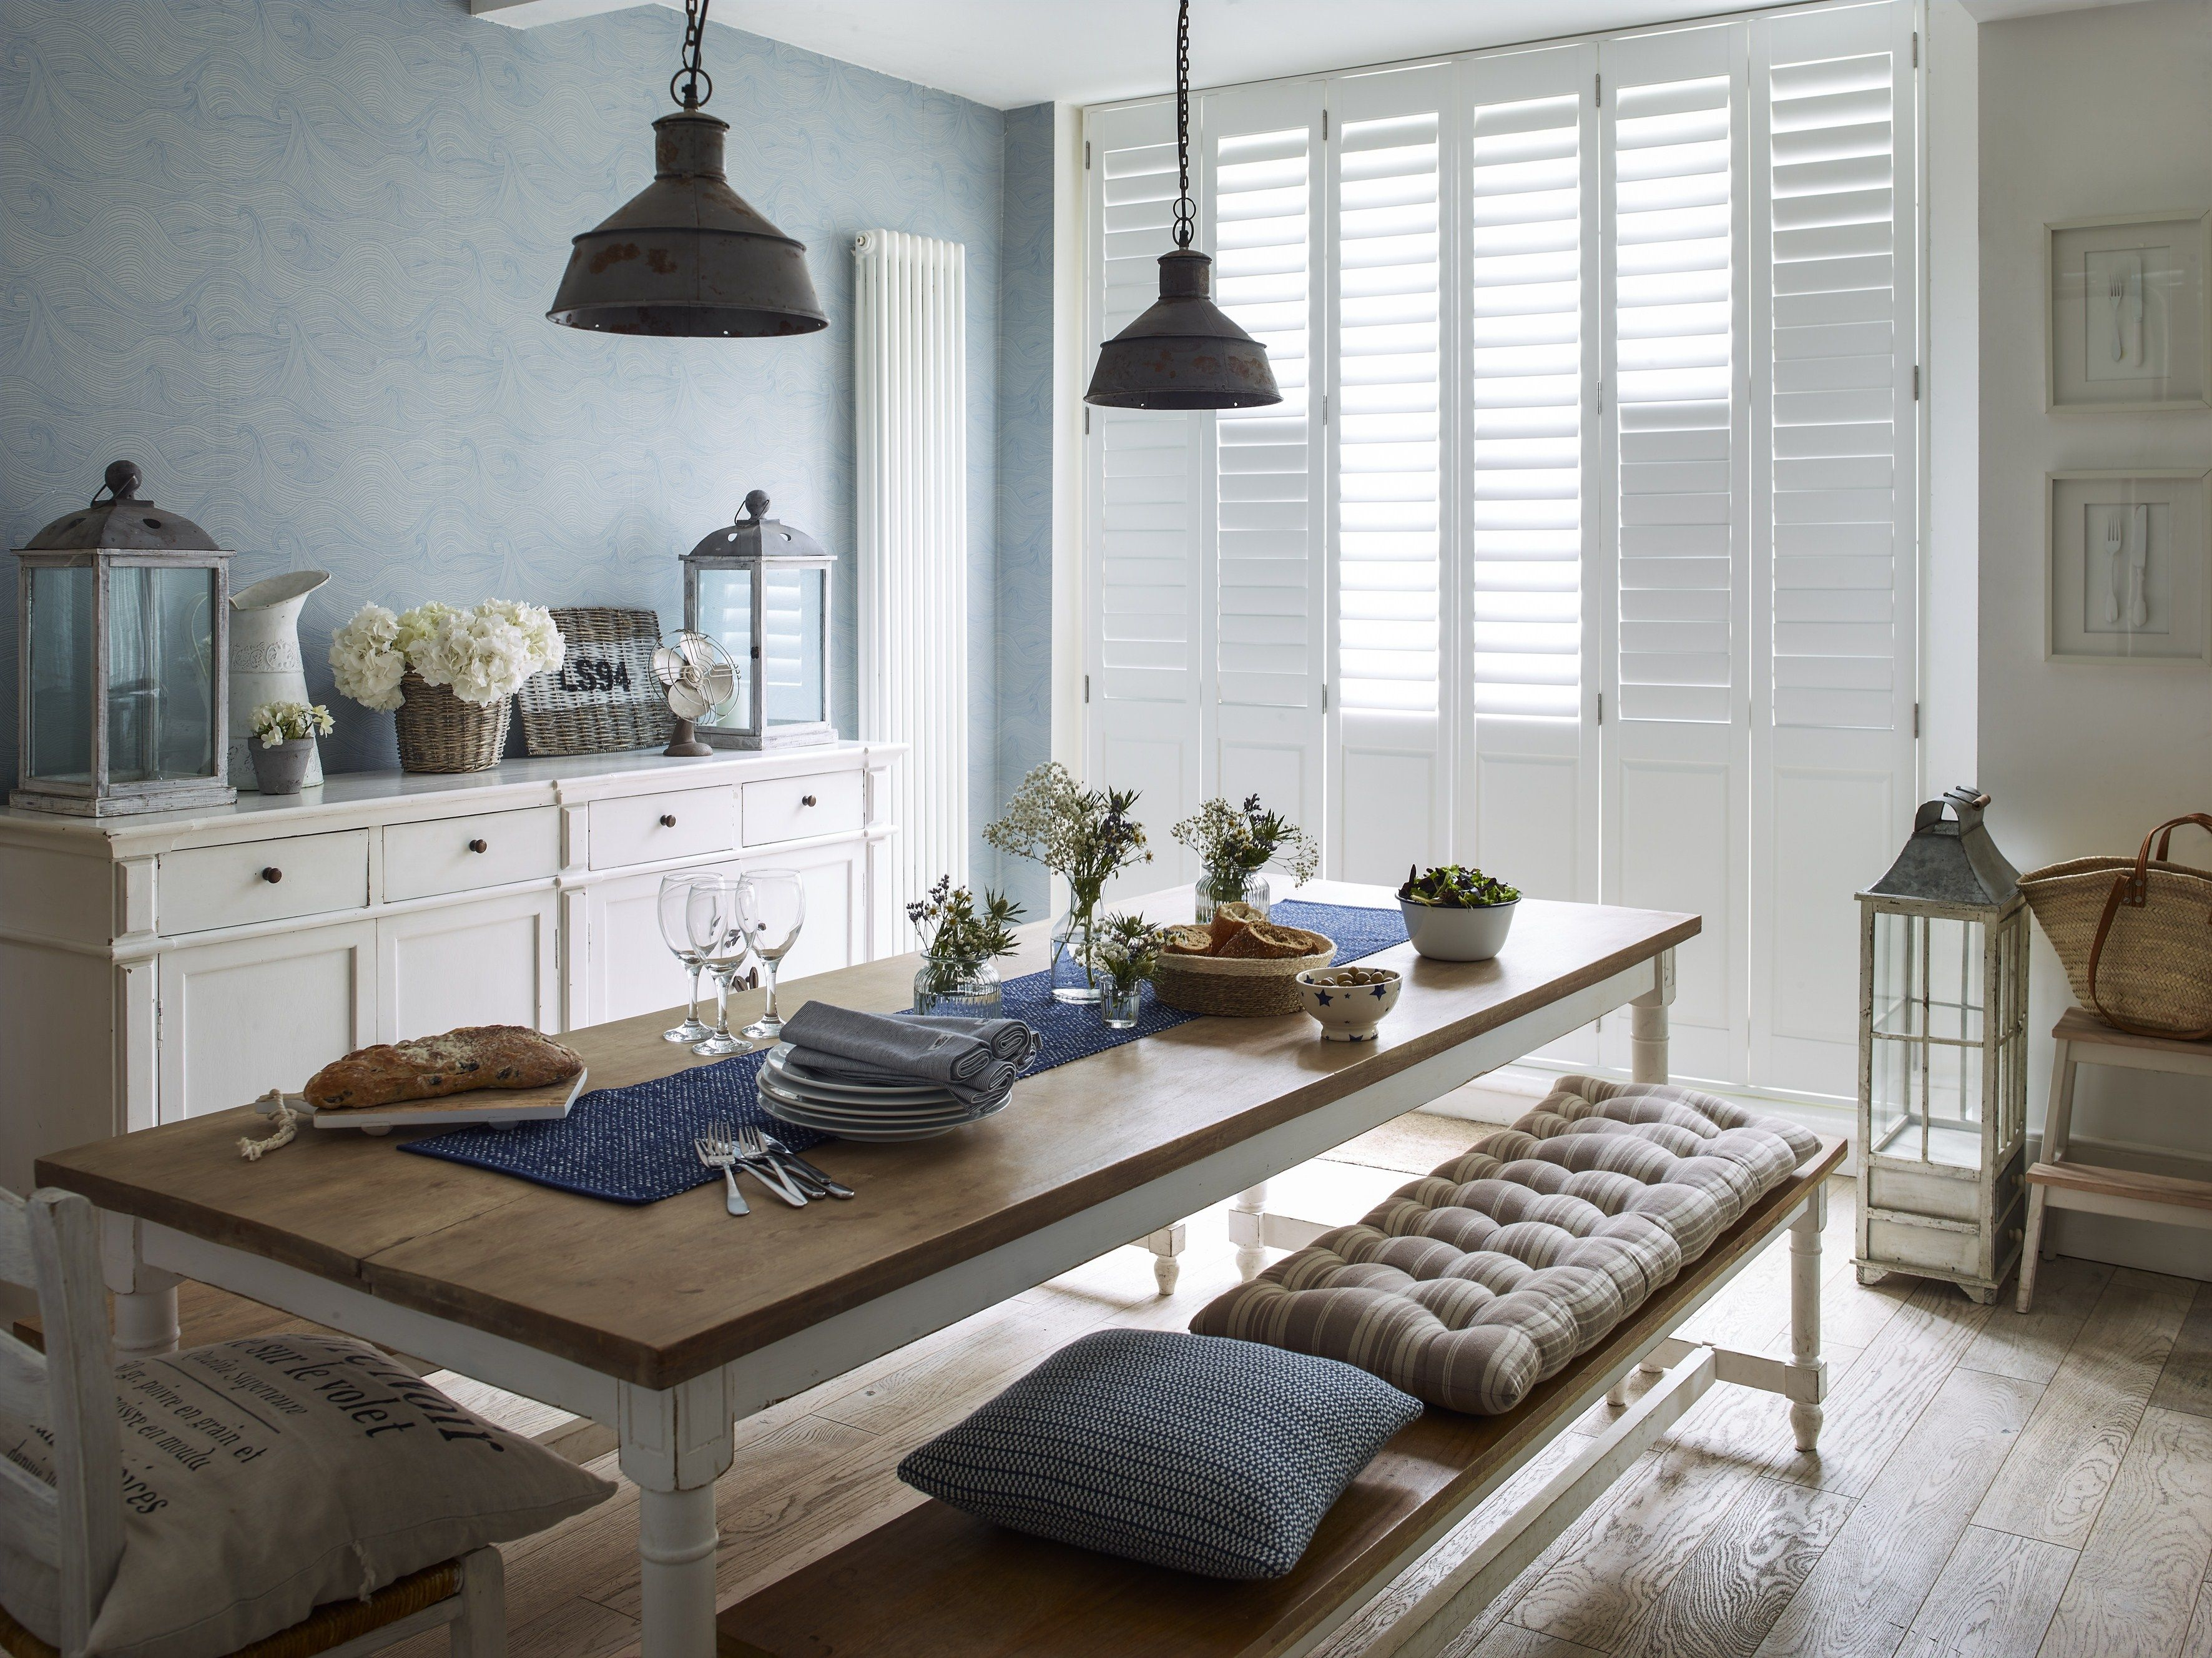 Awesome interior collection of Basswood Shutter for your